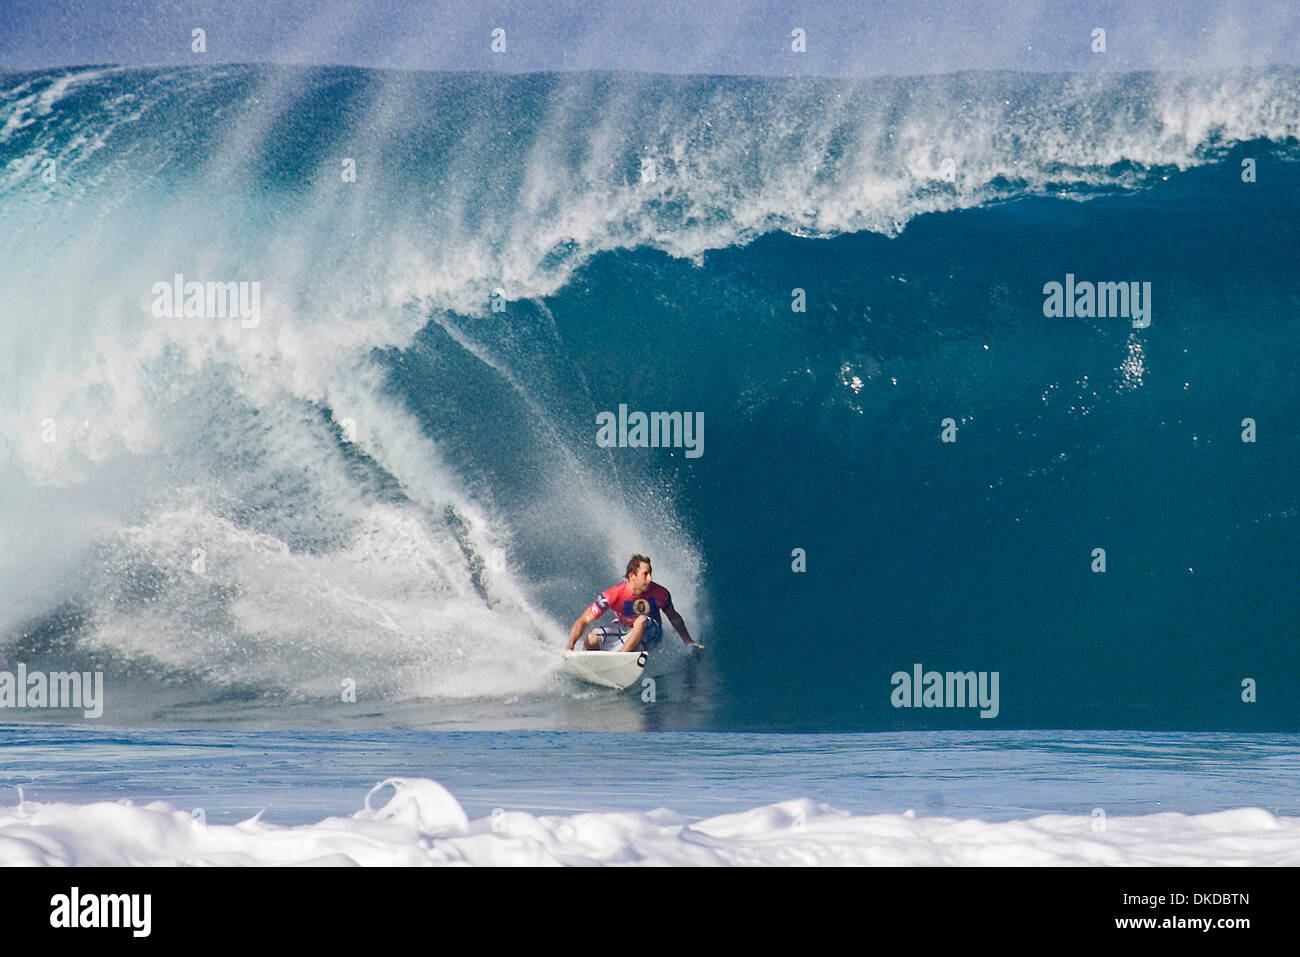 77e8c9b5243128 Surfing Action Pipeline Hawaii Stock Photos   Surfing Action ...